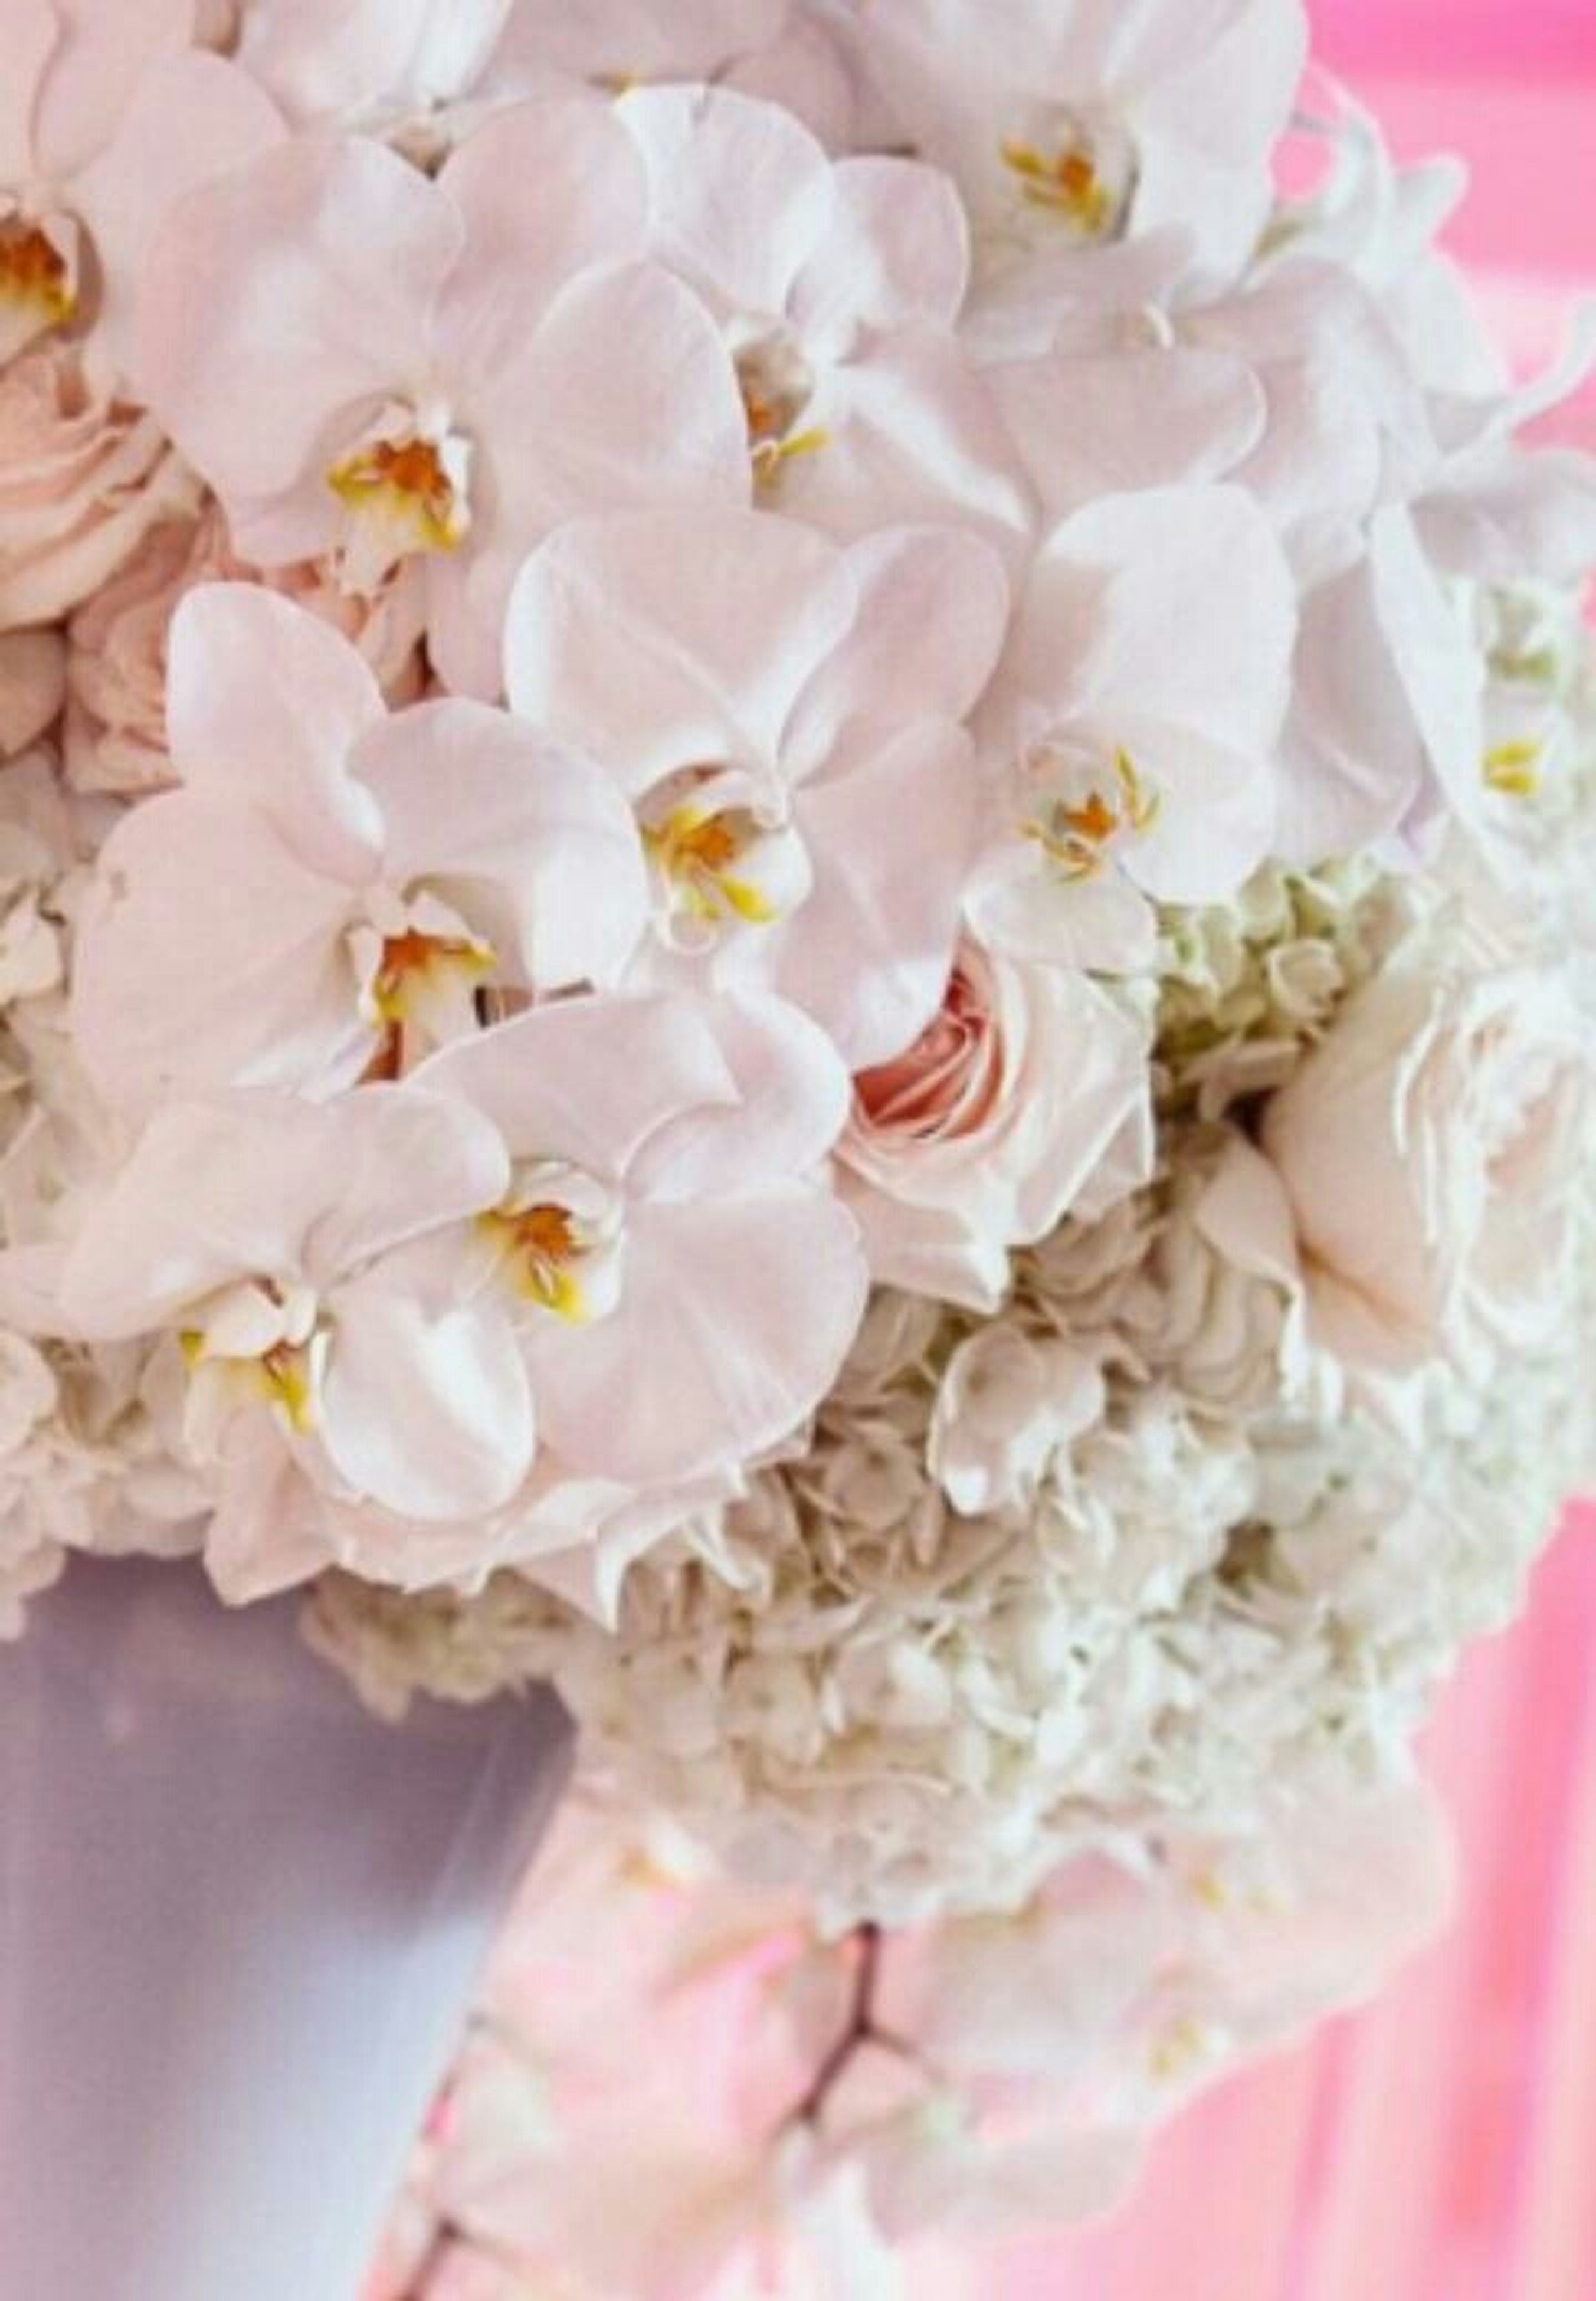 flower, freshness, petal, fragility, flower head, beauty in nature, full frame, backgrounds, pink color, close-up, nature, white color, growth, blooming, blossom, indoors, bunch of flowers, stamen, pollen, pink